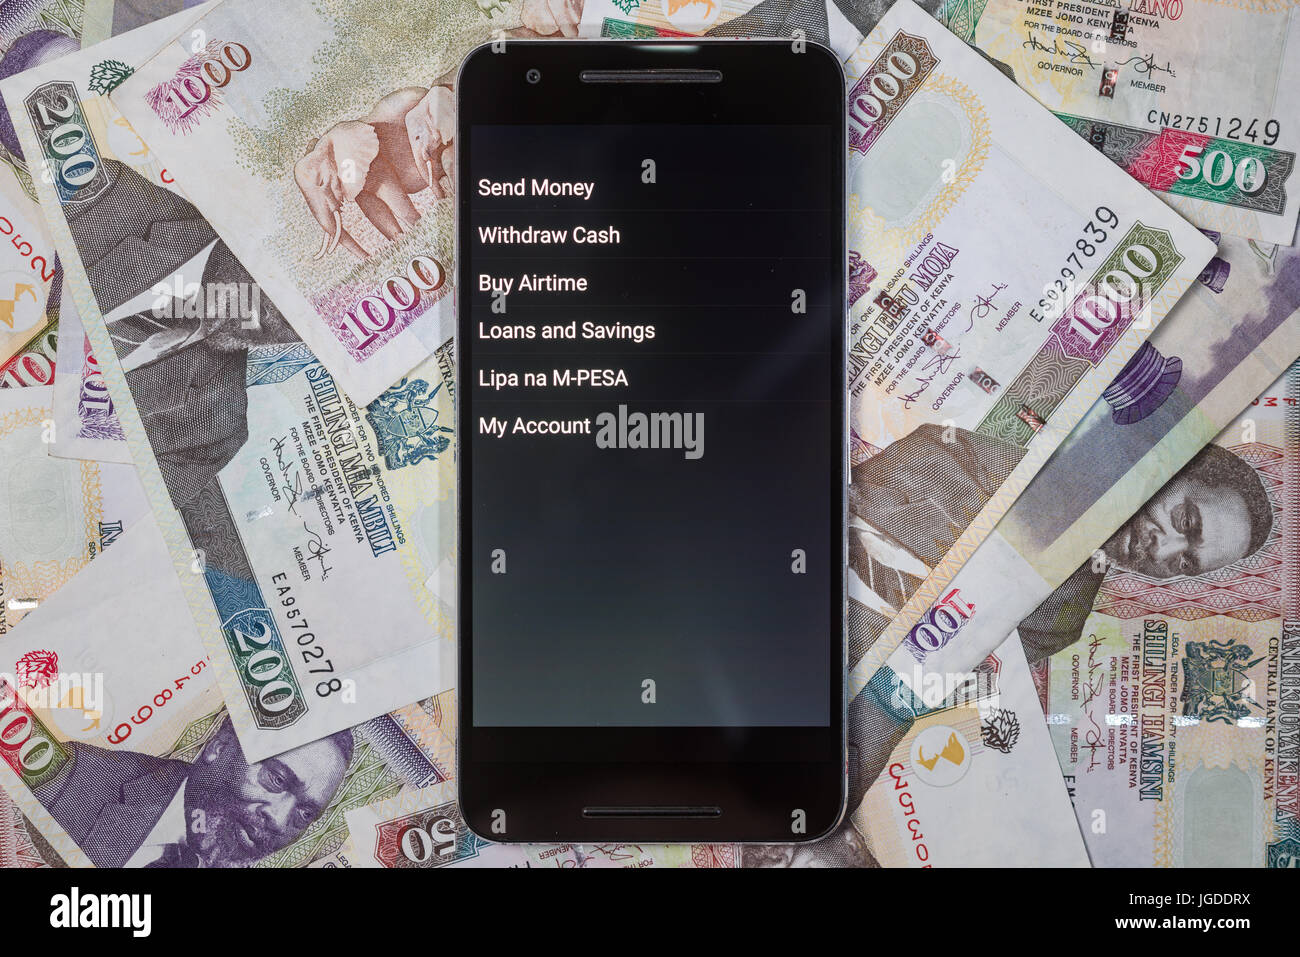 Safaricom M-Pesa fintech microfinance money transaction service on phone with Kenyan Shilling bank notes background Stock Photo